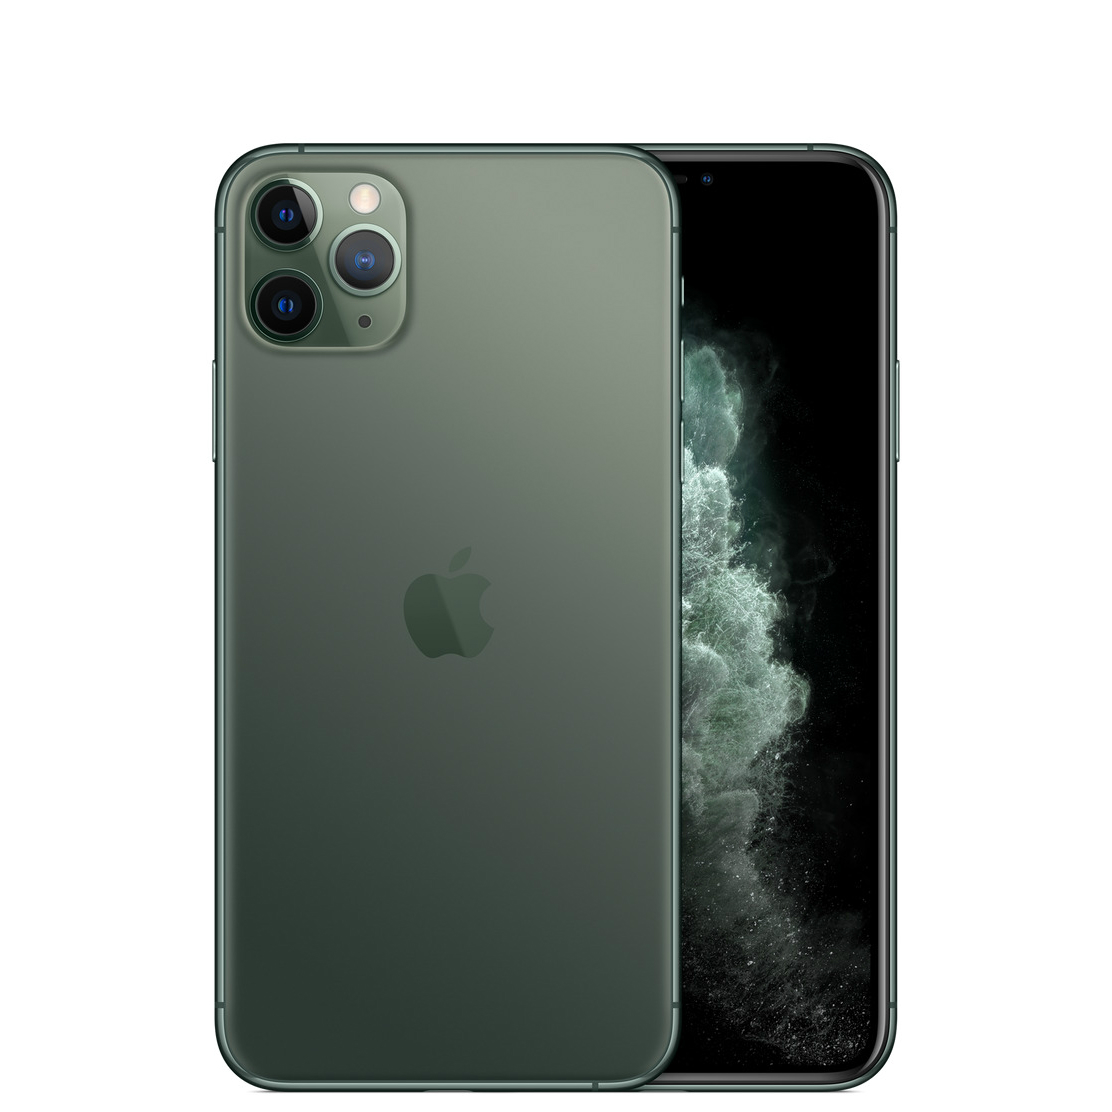 Image of Apple iPhone 11 Pro Max 256GB A2220 Dual Sim - Midnight Green